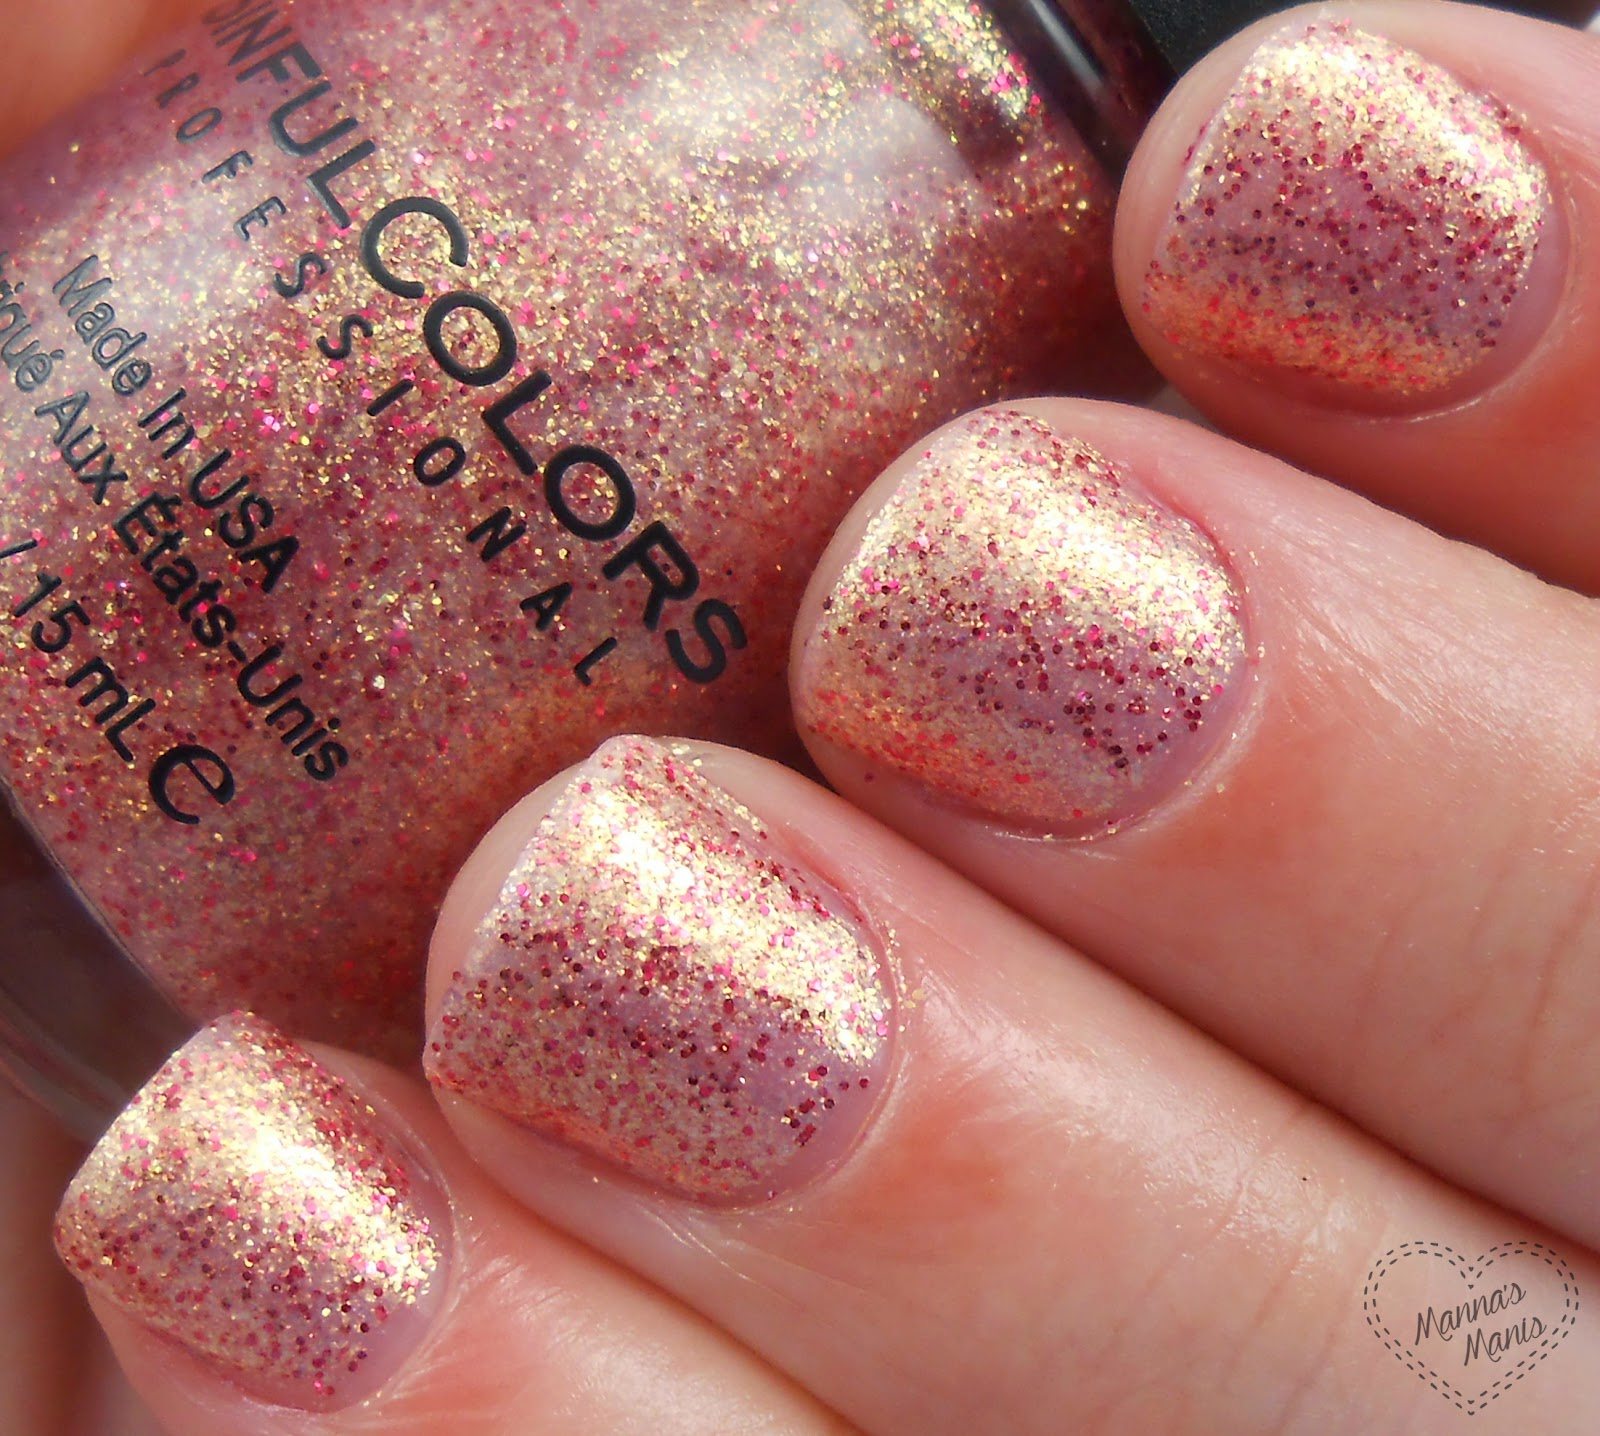 sinful colors glided, a shimmery gold and red nail polish